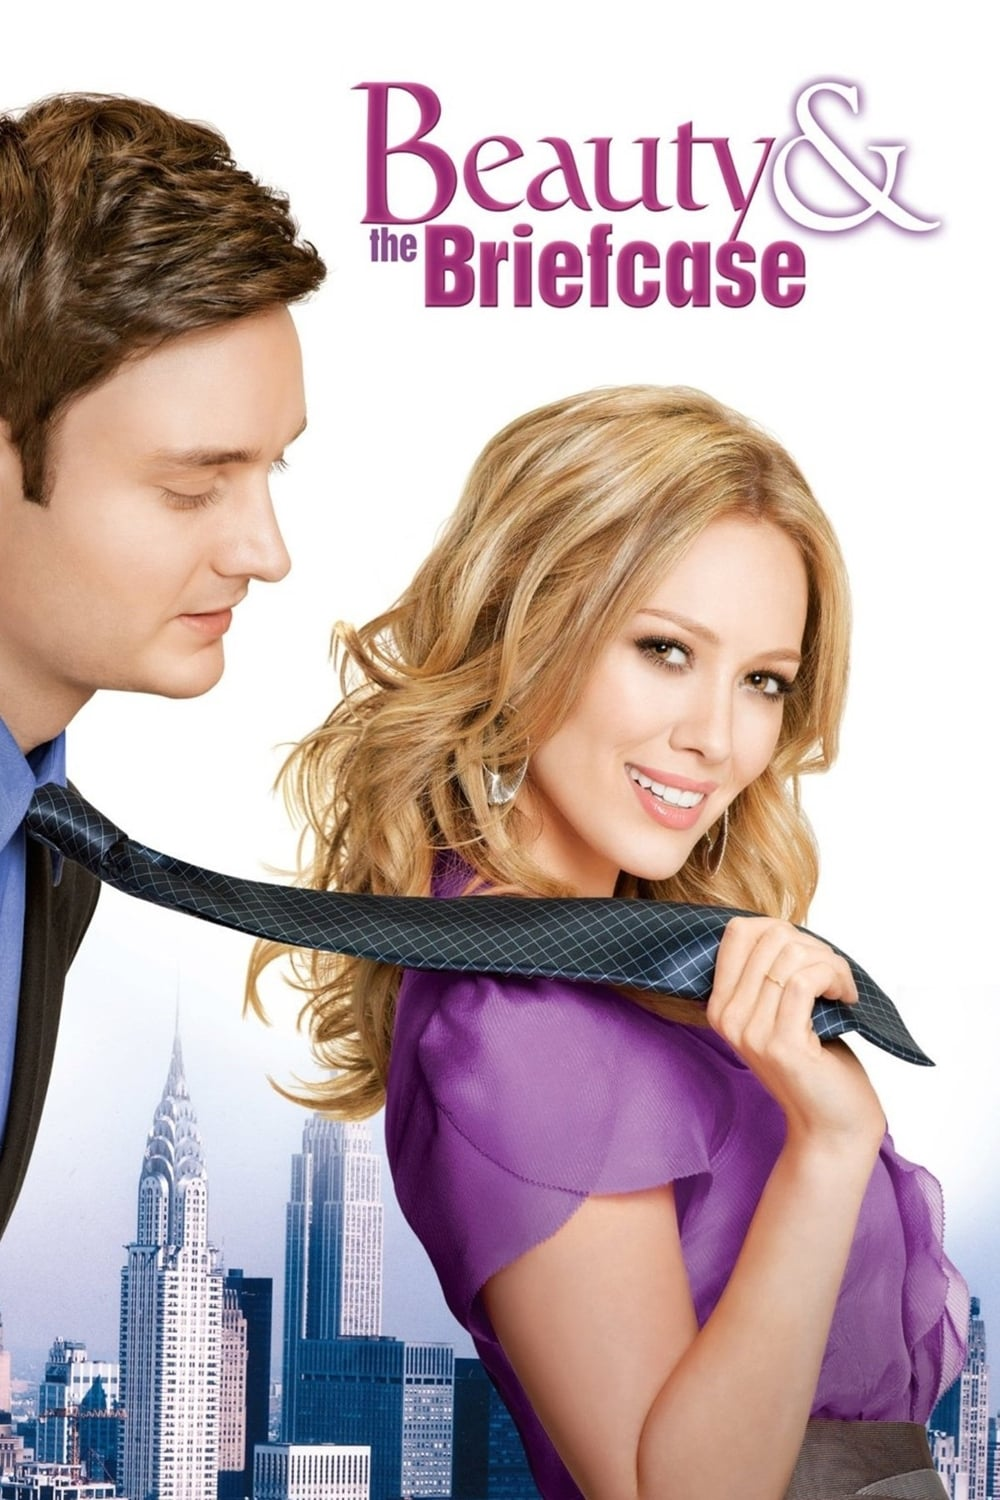 Beauty & the Briefcase (2010)